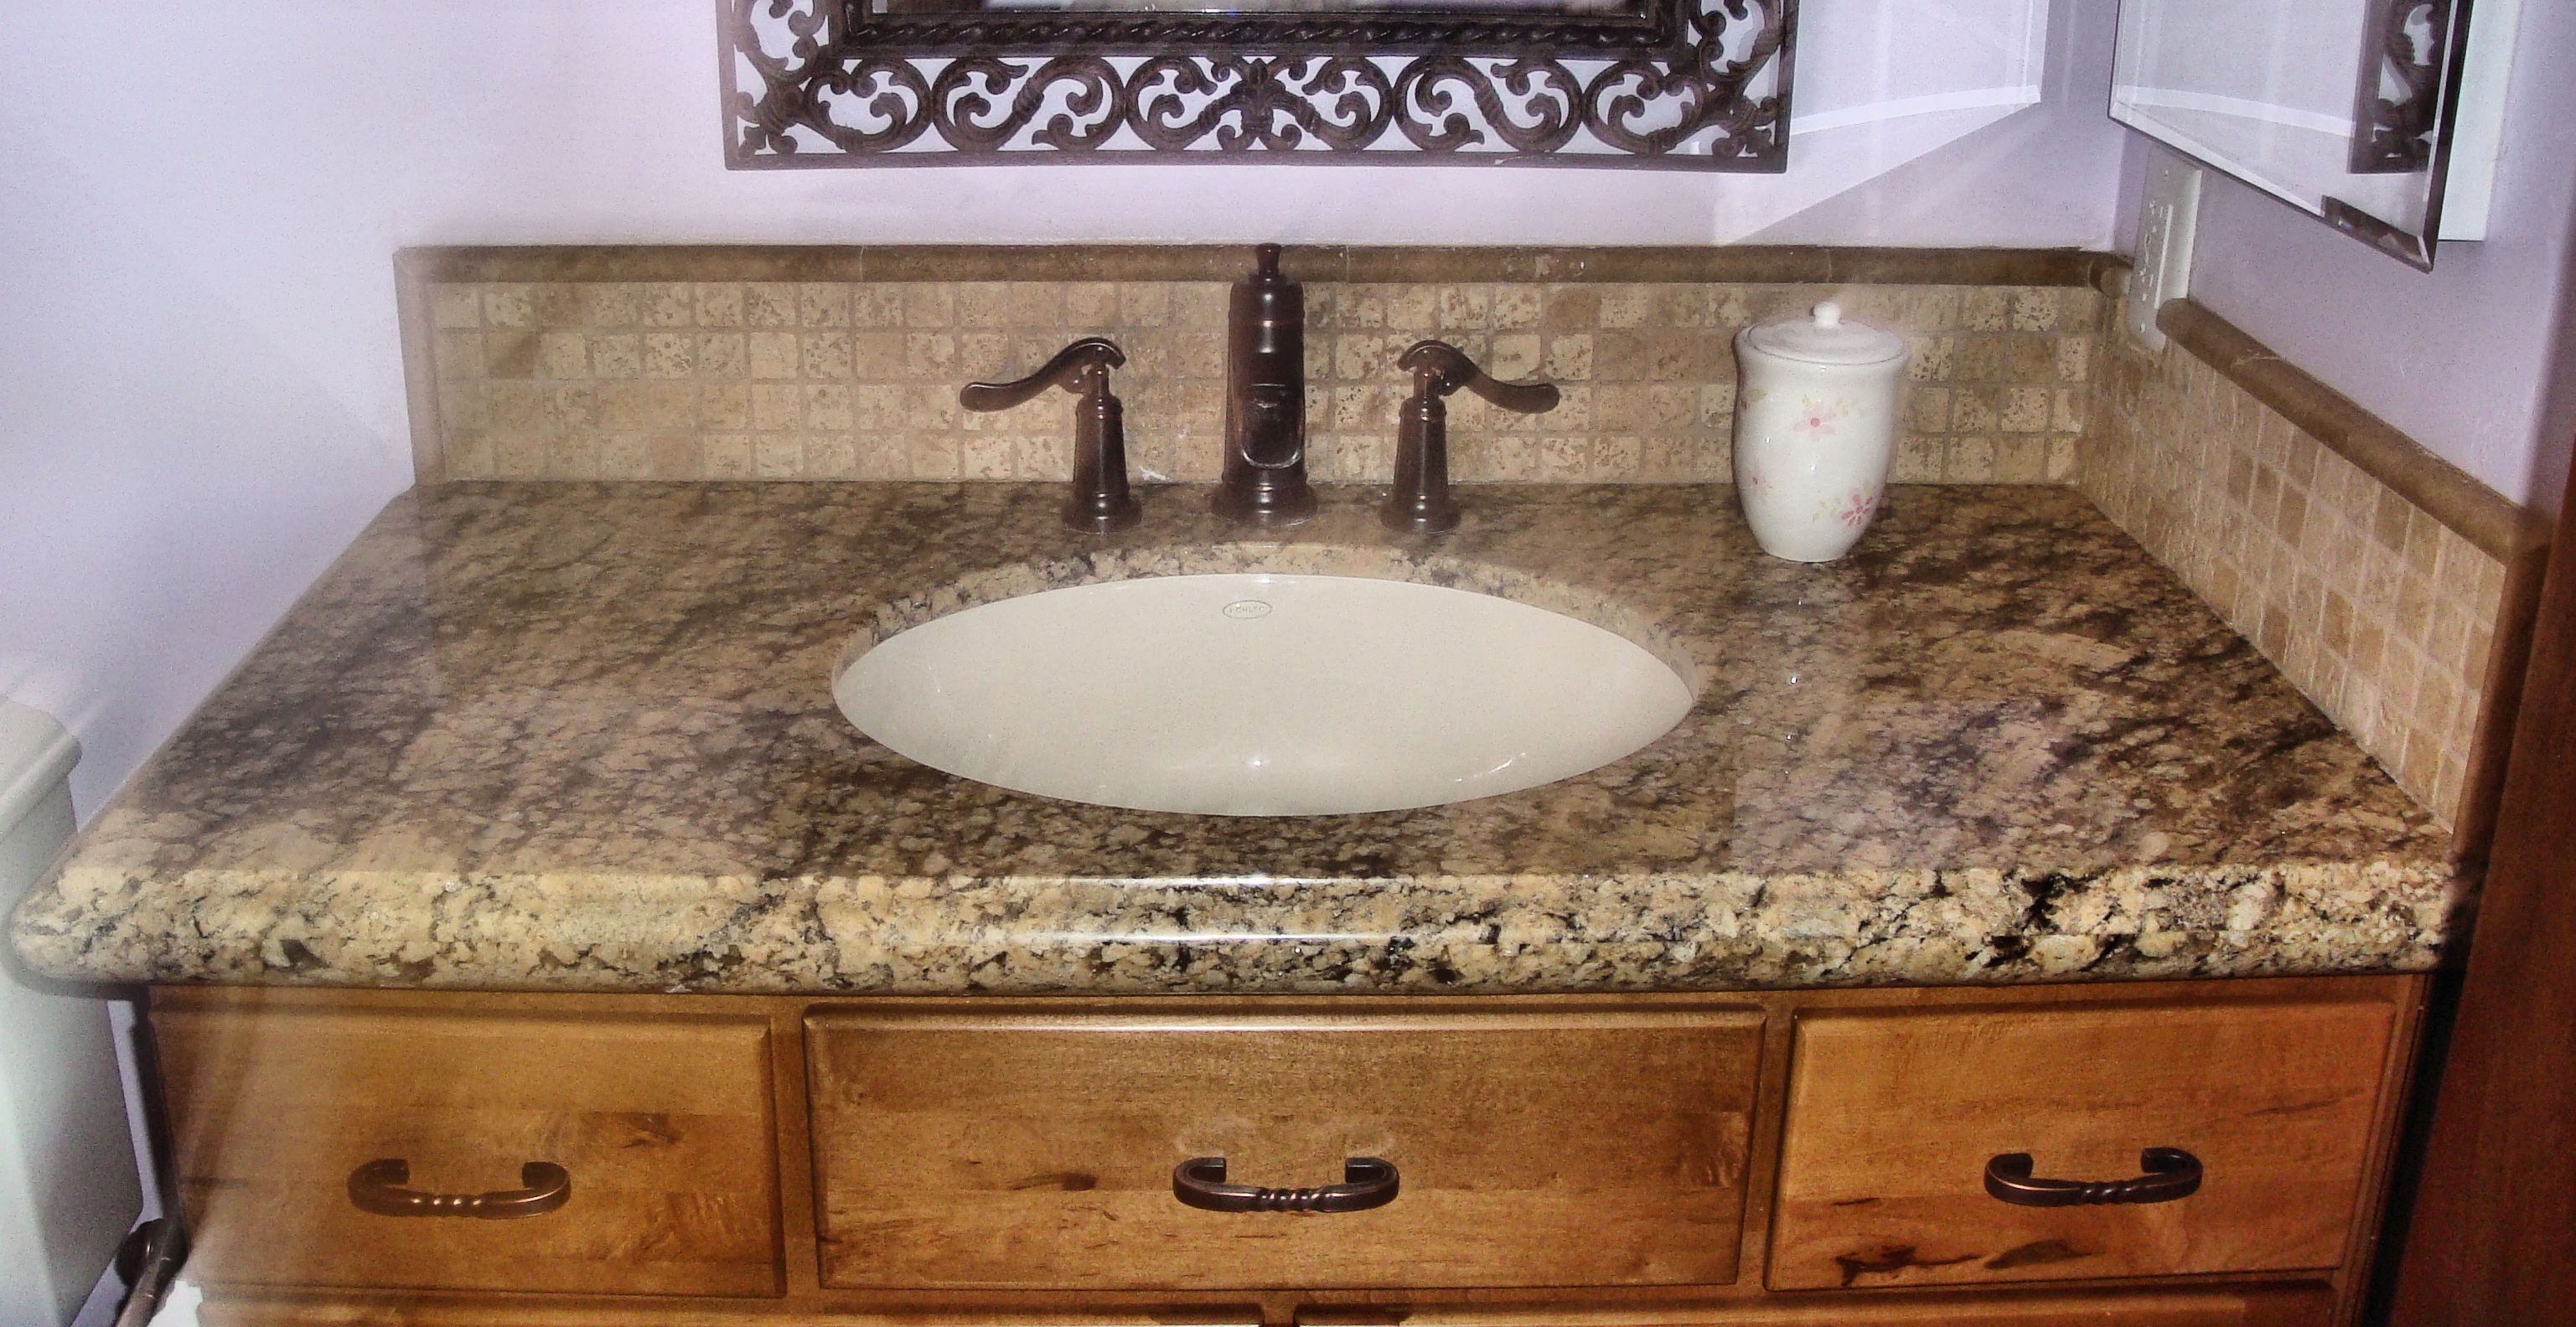 Granite Bathroom Countertops Beige Granite Bathroom Countertop Las Vegas